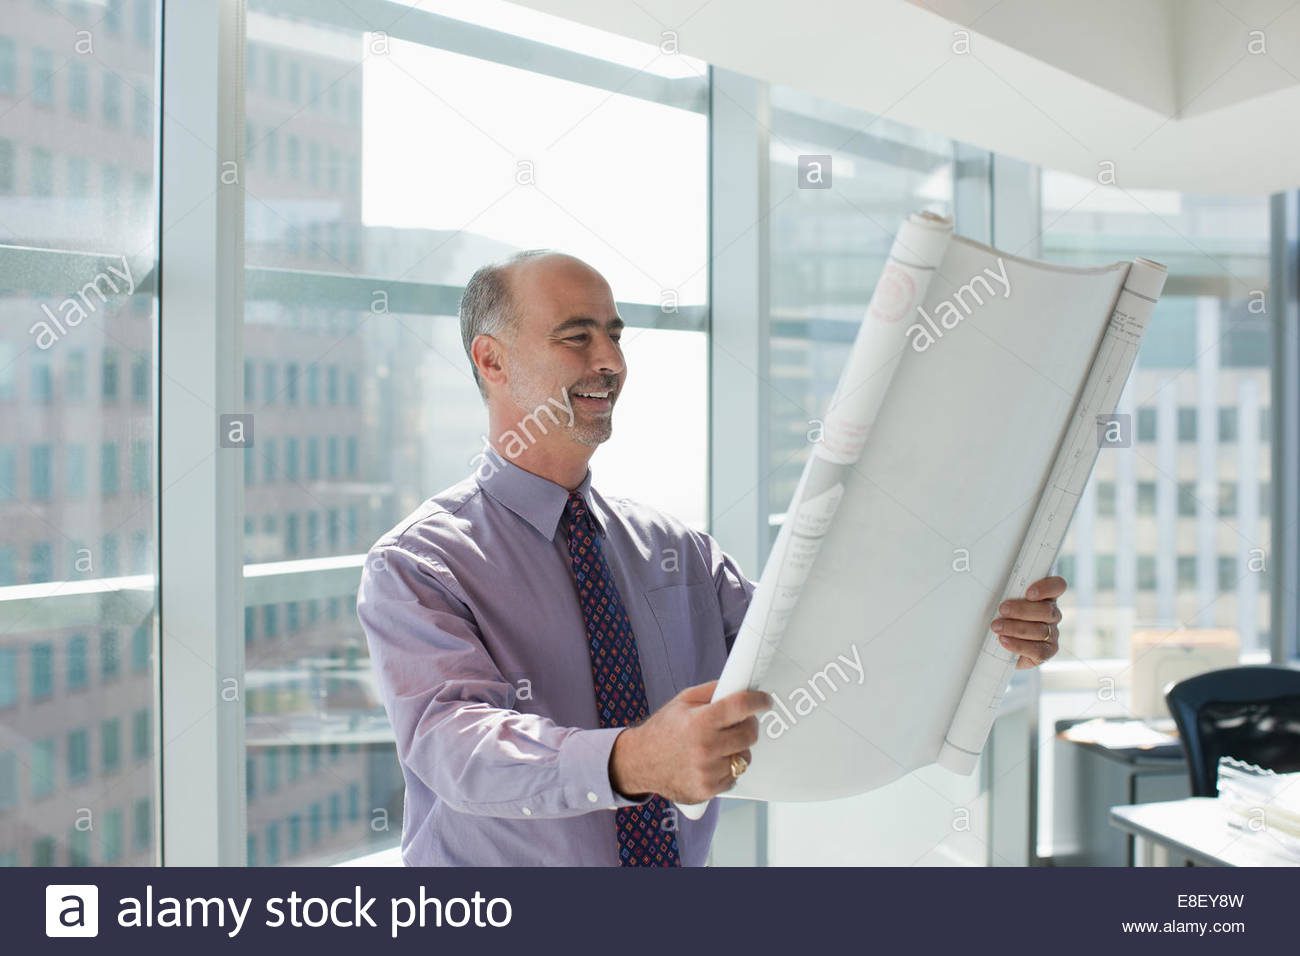 Businessman reading blueprint in office - Stock Image